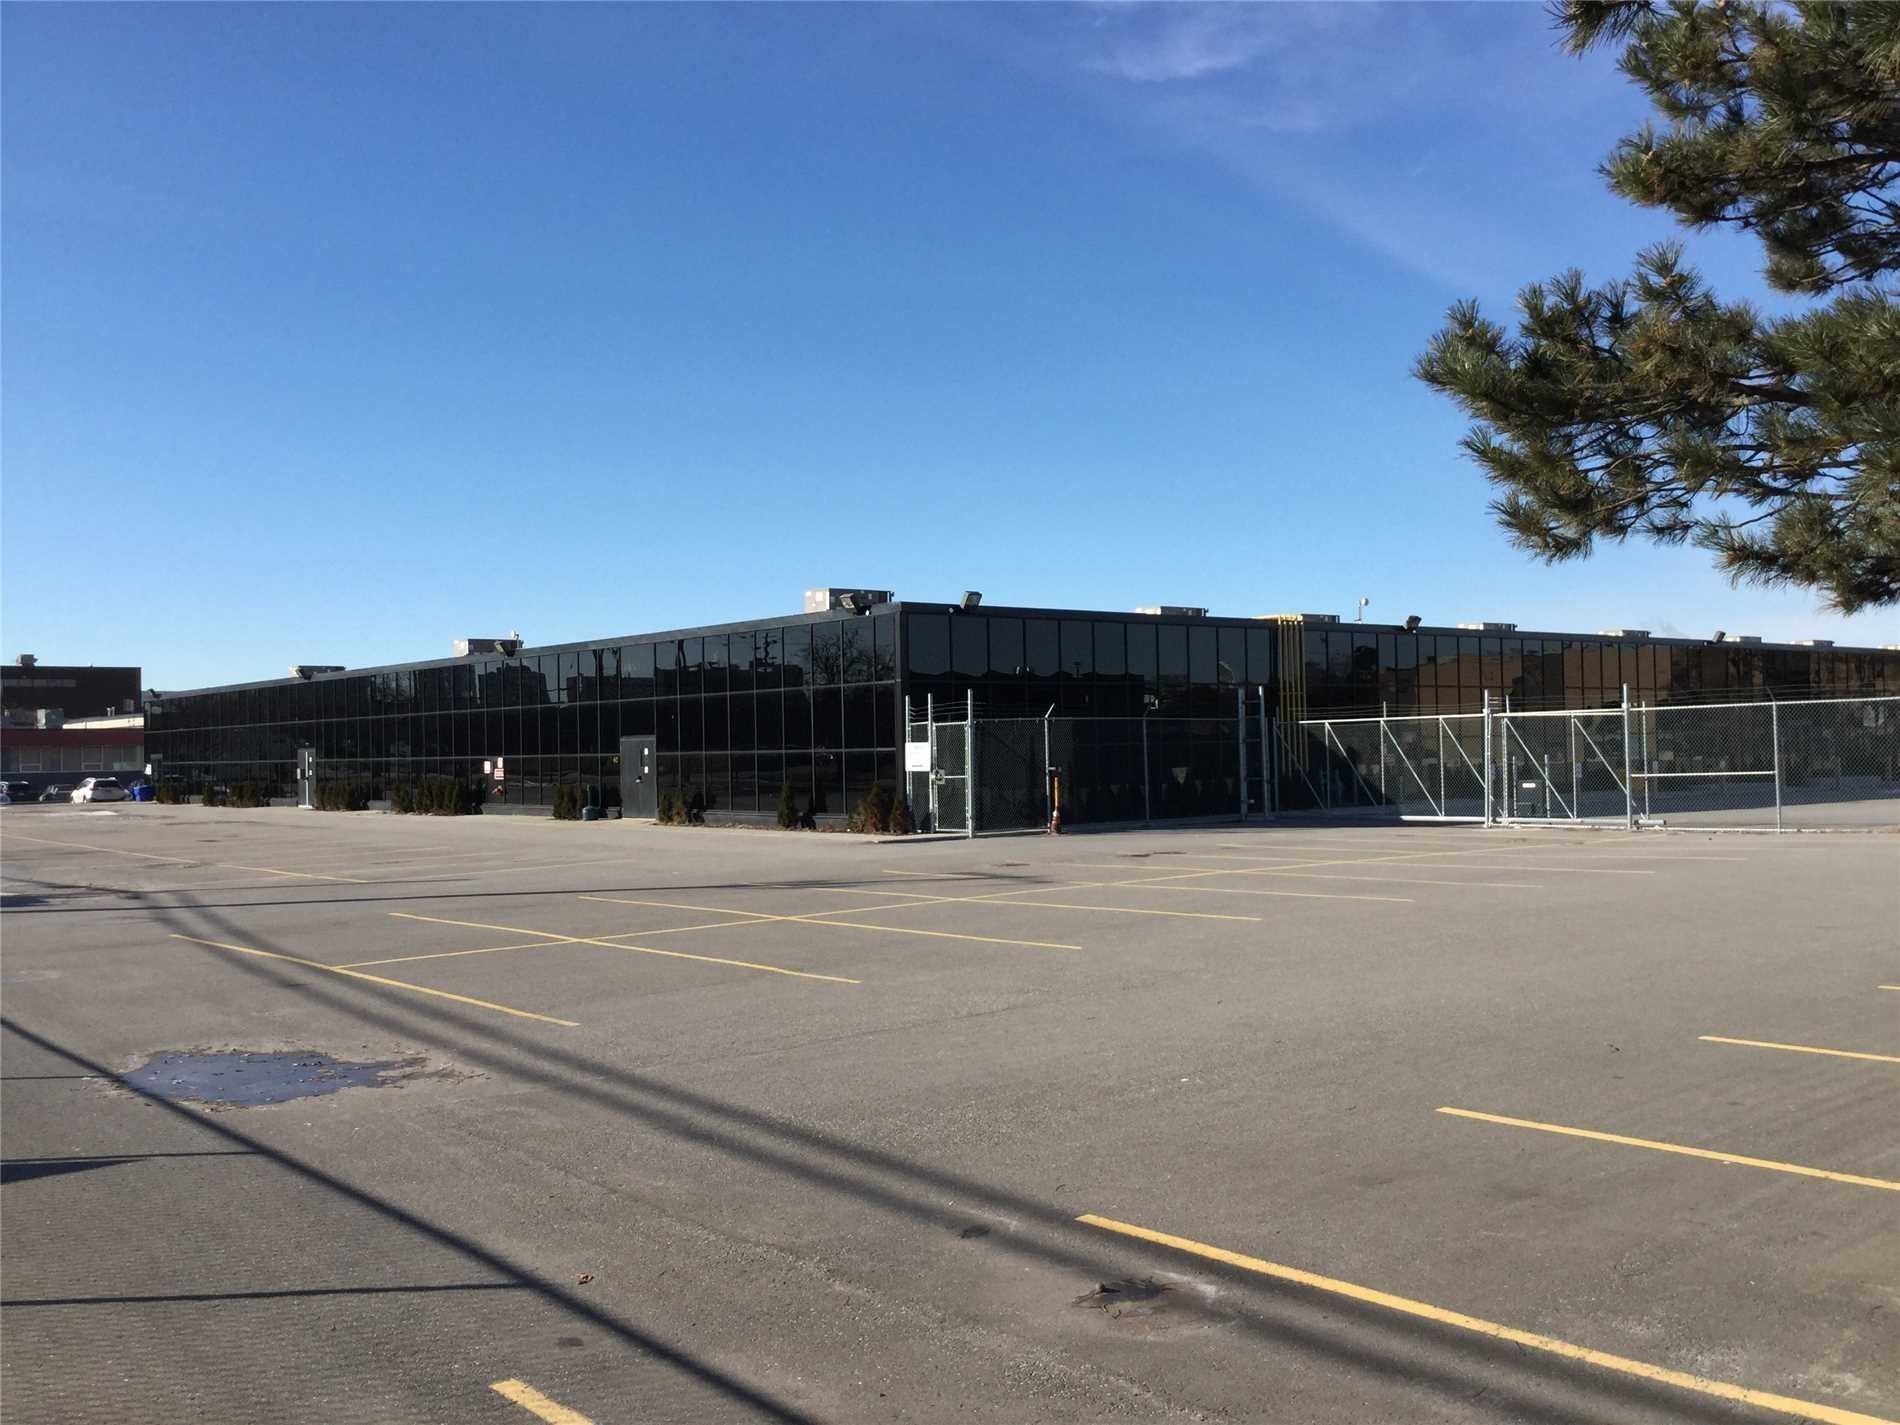 Fully Renovated Flex Building, Divisible, Suitable For Loft-Style Offices/High Tech/Showroom/Clean Warehouse; Fully Heated & Air Conditioned; 14 Ft Clear Height, Skylights, Fibre Optic Cable. Parking For 200+ Vehicles With Secure Fenced Parking Compound With Electric Security Gates, Vehicle Charging Stations. Conveniently Located At The Dvp And Lawrence Ave. E Near Transit, Tesla Motors.